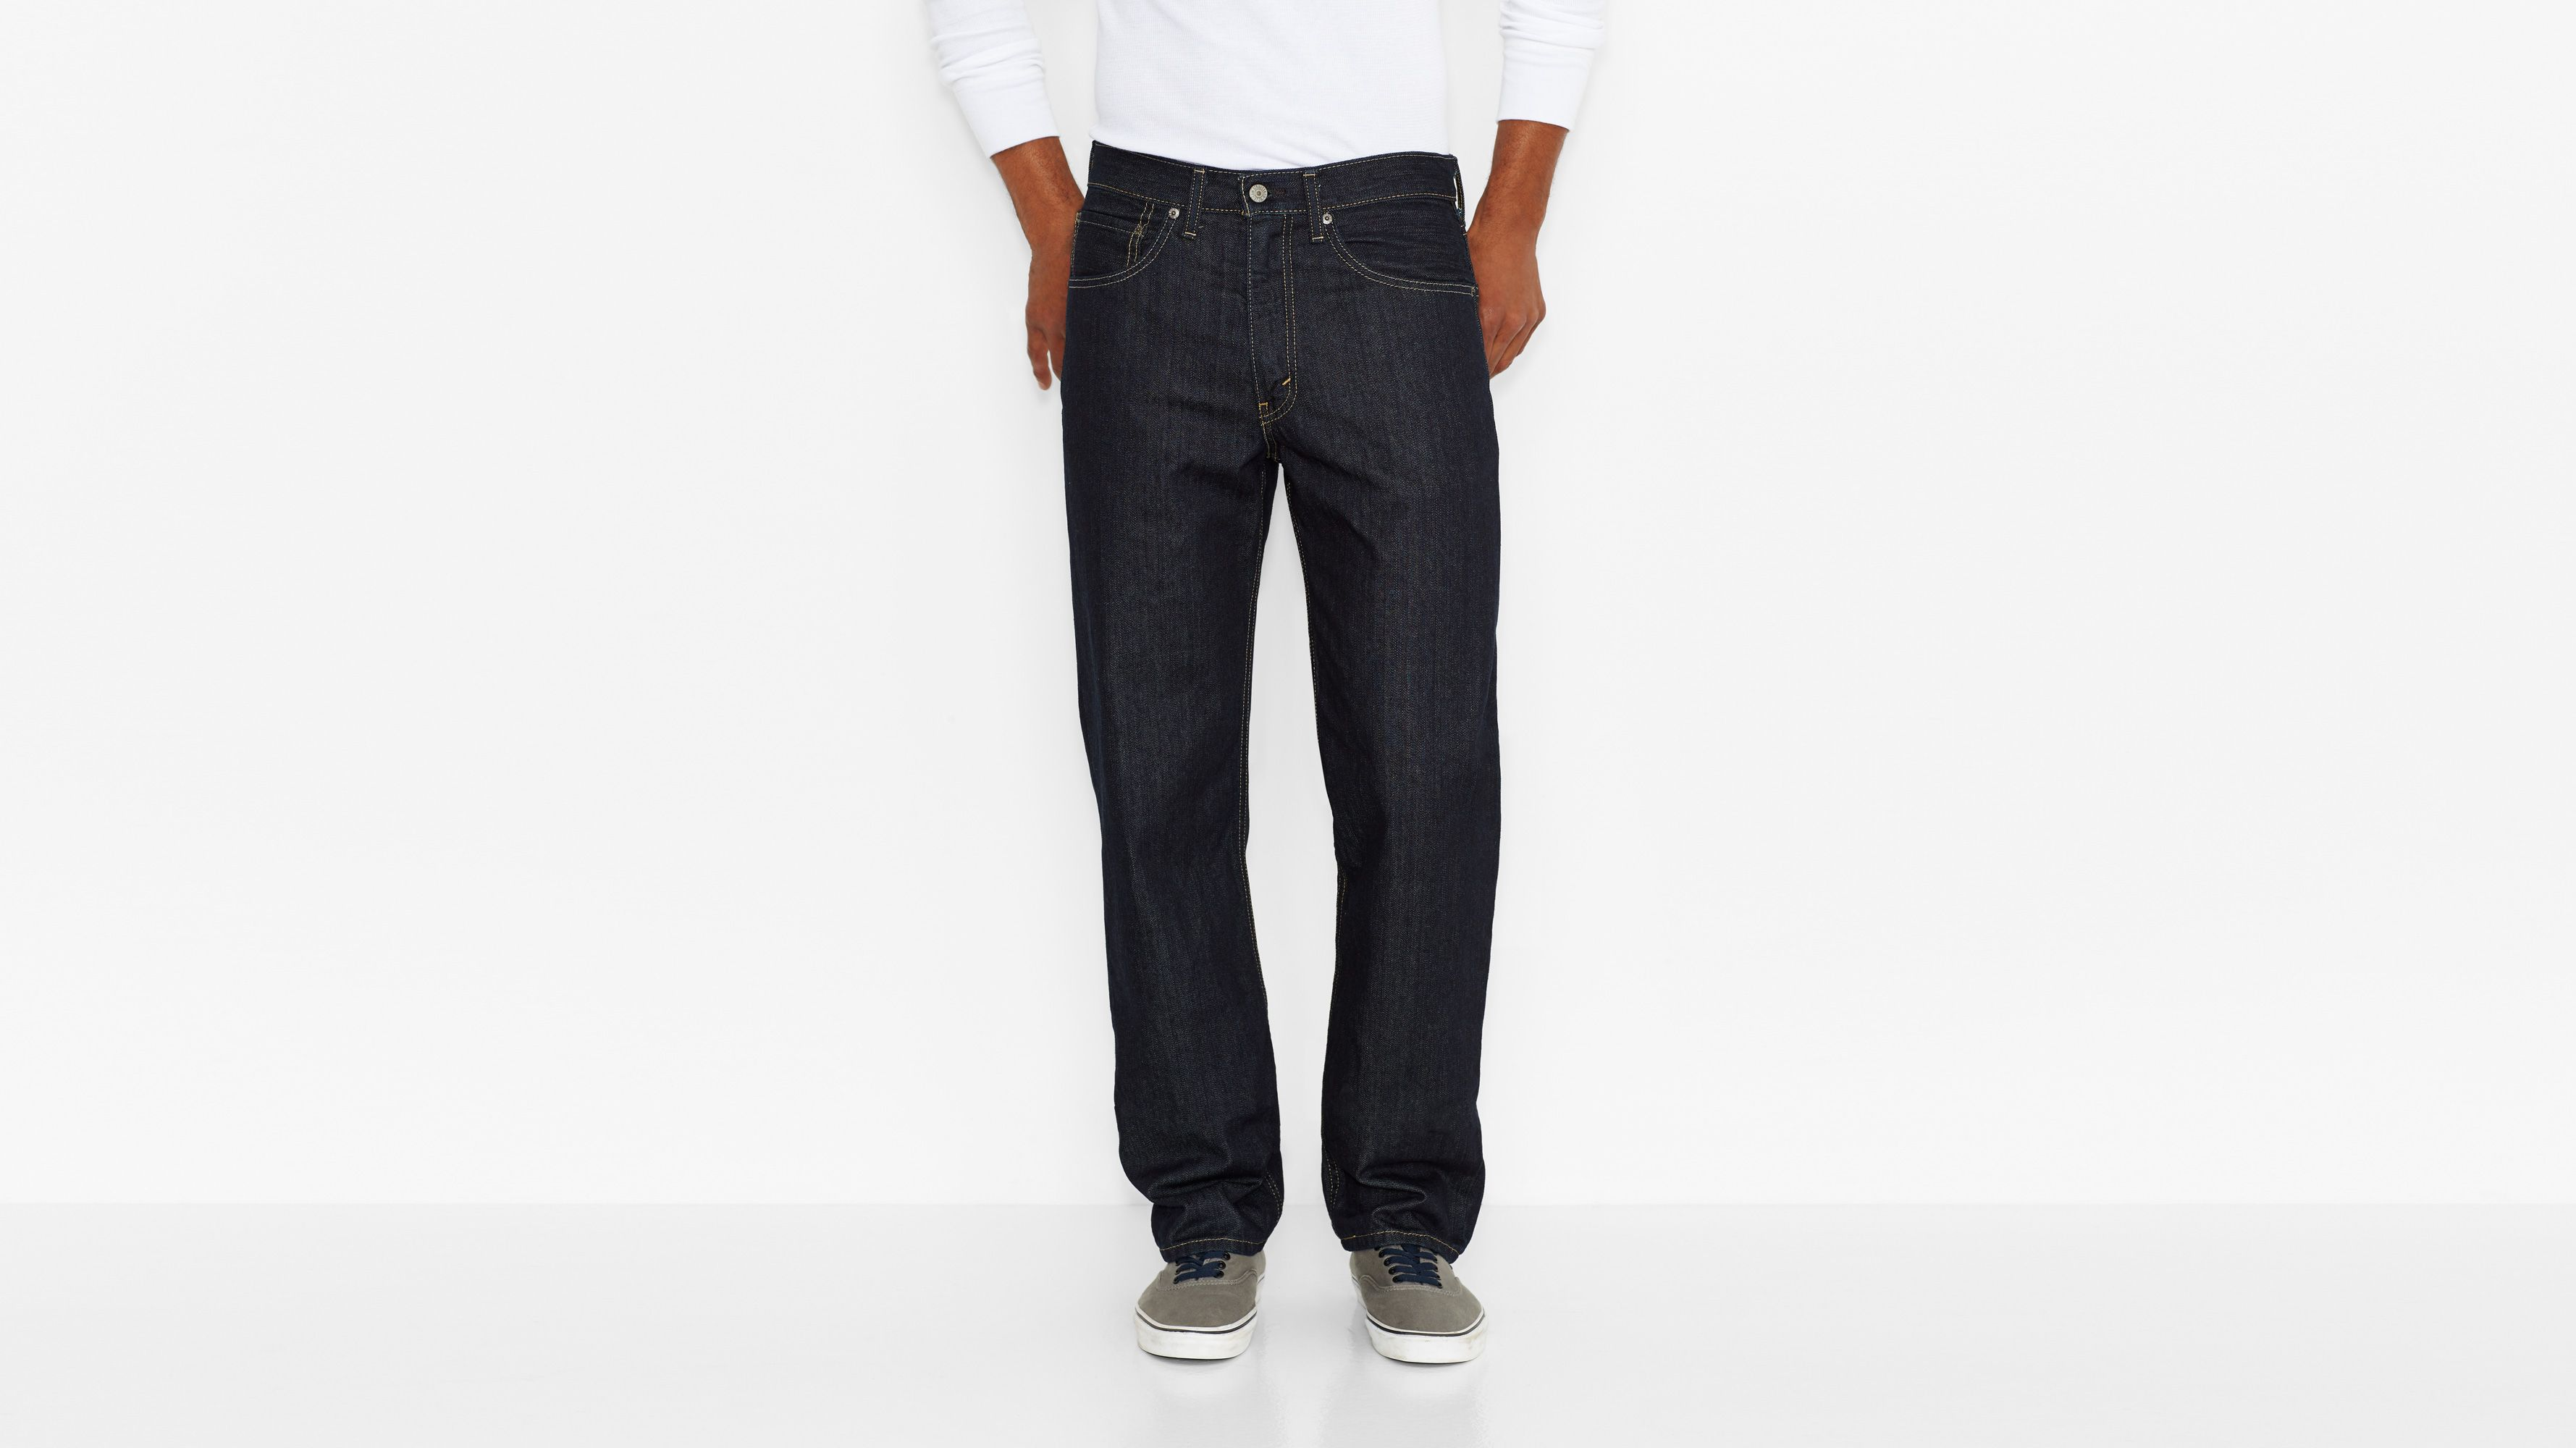 550™ Relaxed Fit Jeans - Tumbled Rigid